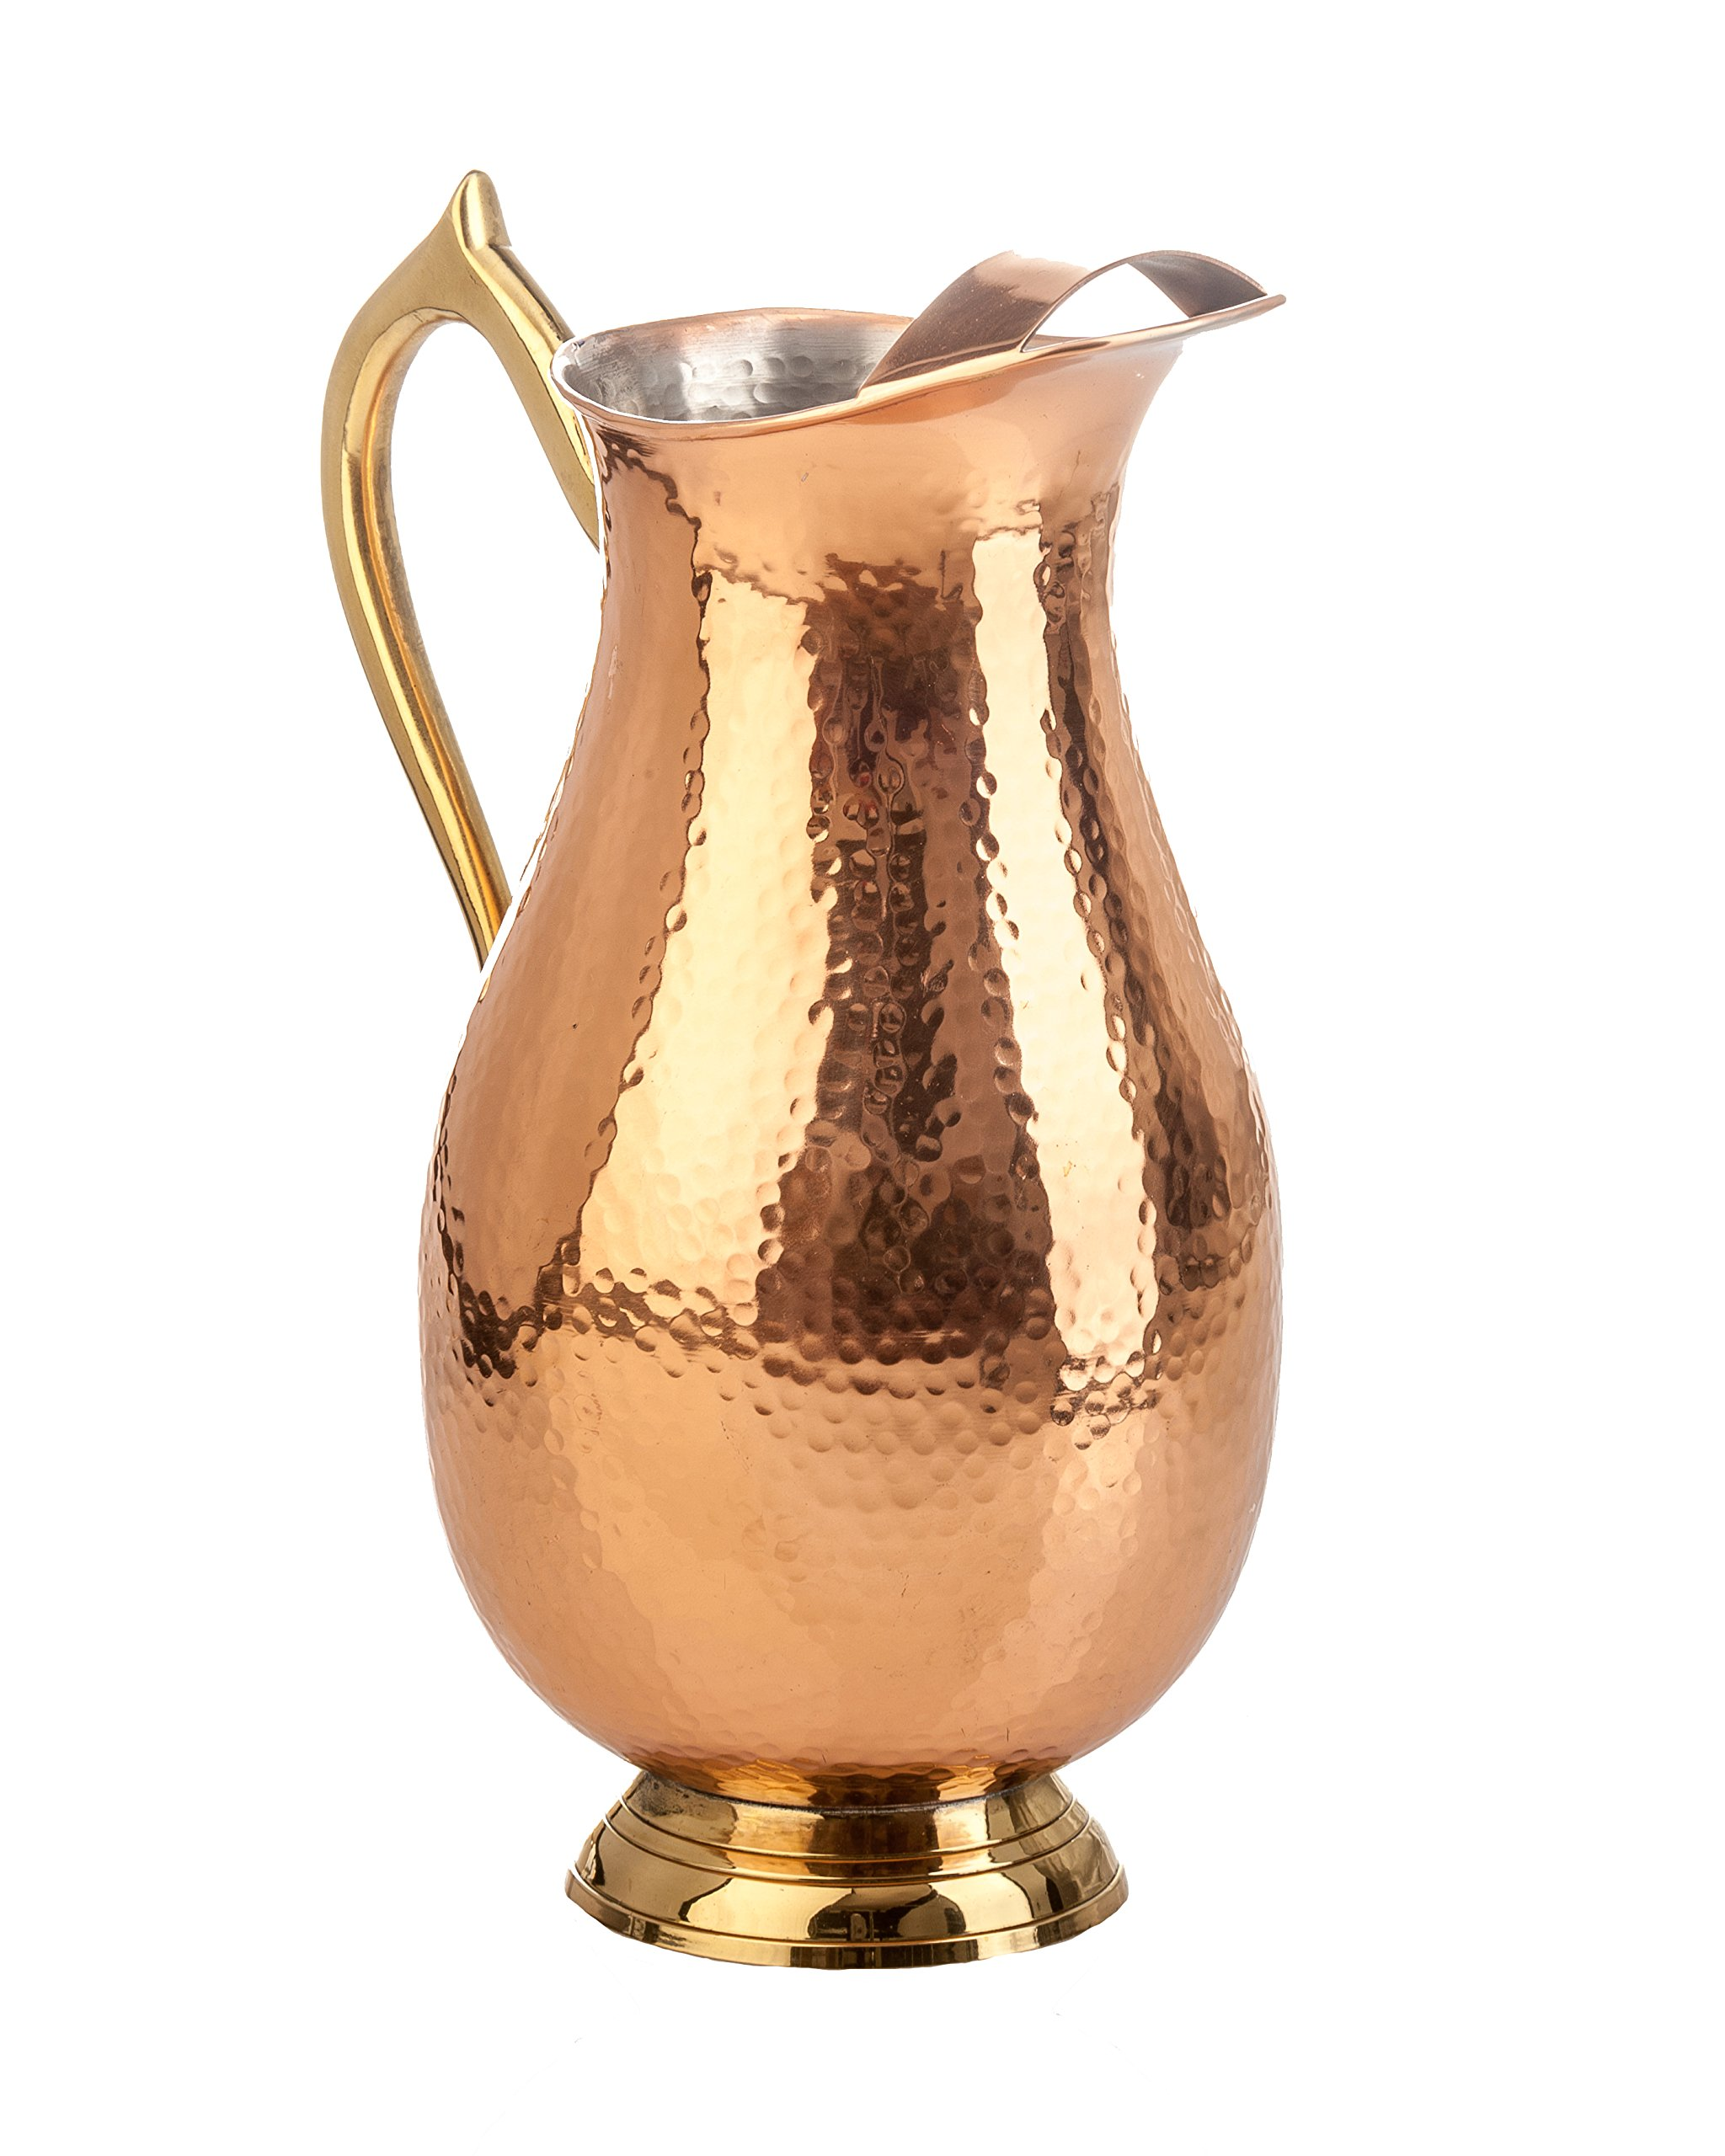 Abigails Shiny Hammered Copper Pitcher, 5'' x 10.5'' x 7.5'' by Abigails